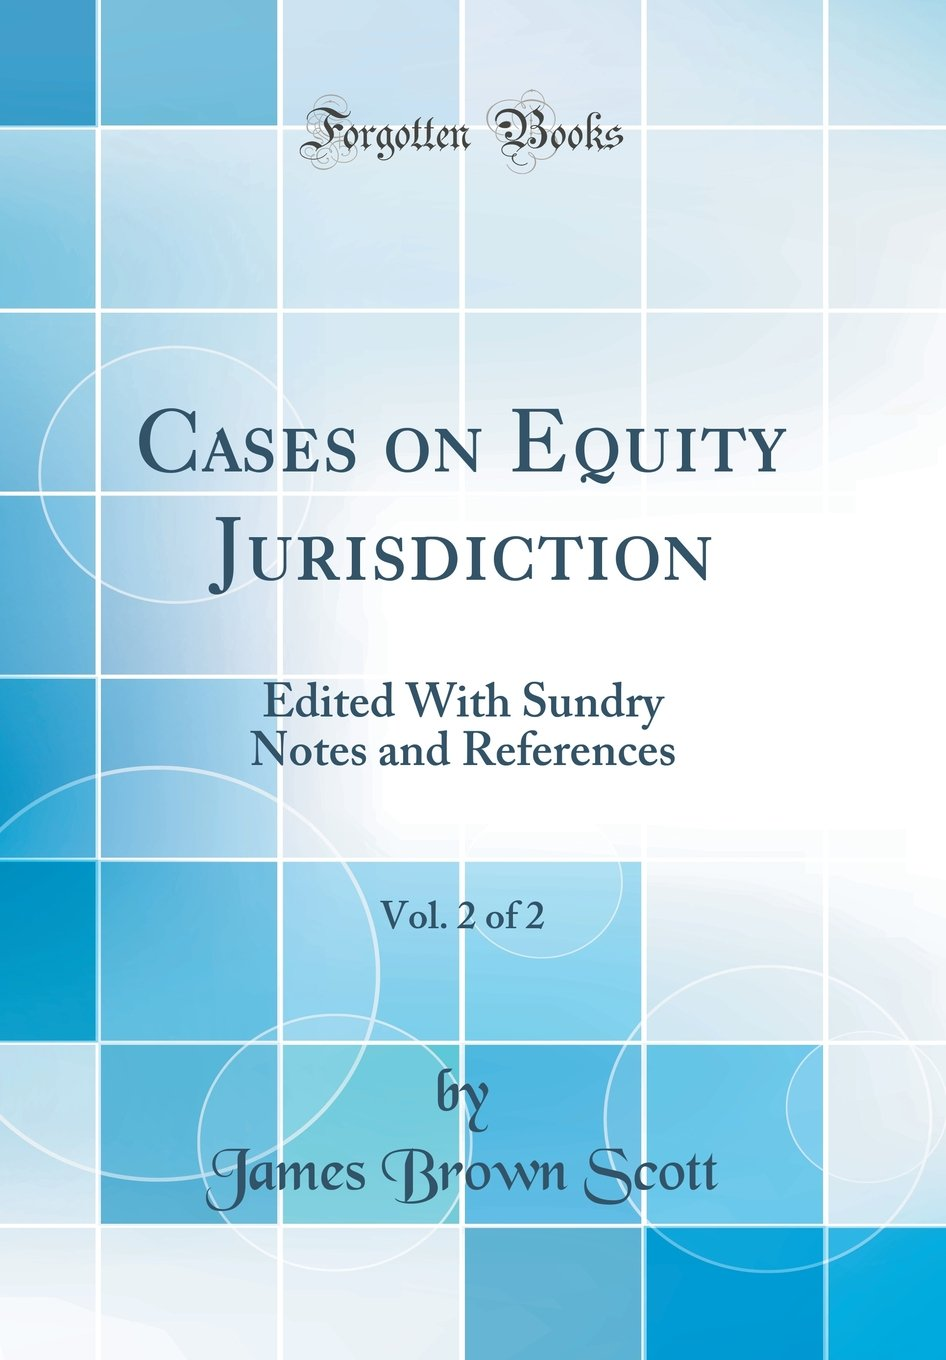 Download Cases on Equity Jurisdiction, Vol. 2 of 2: Edited with Sundry Notes and References (Classic Reprint) Text fb2 book